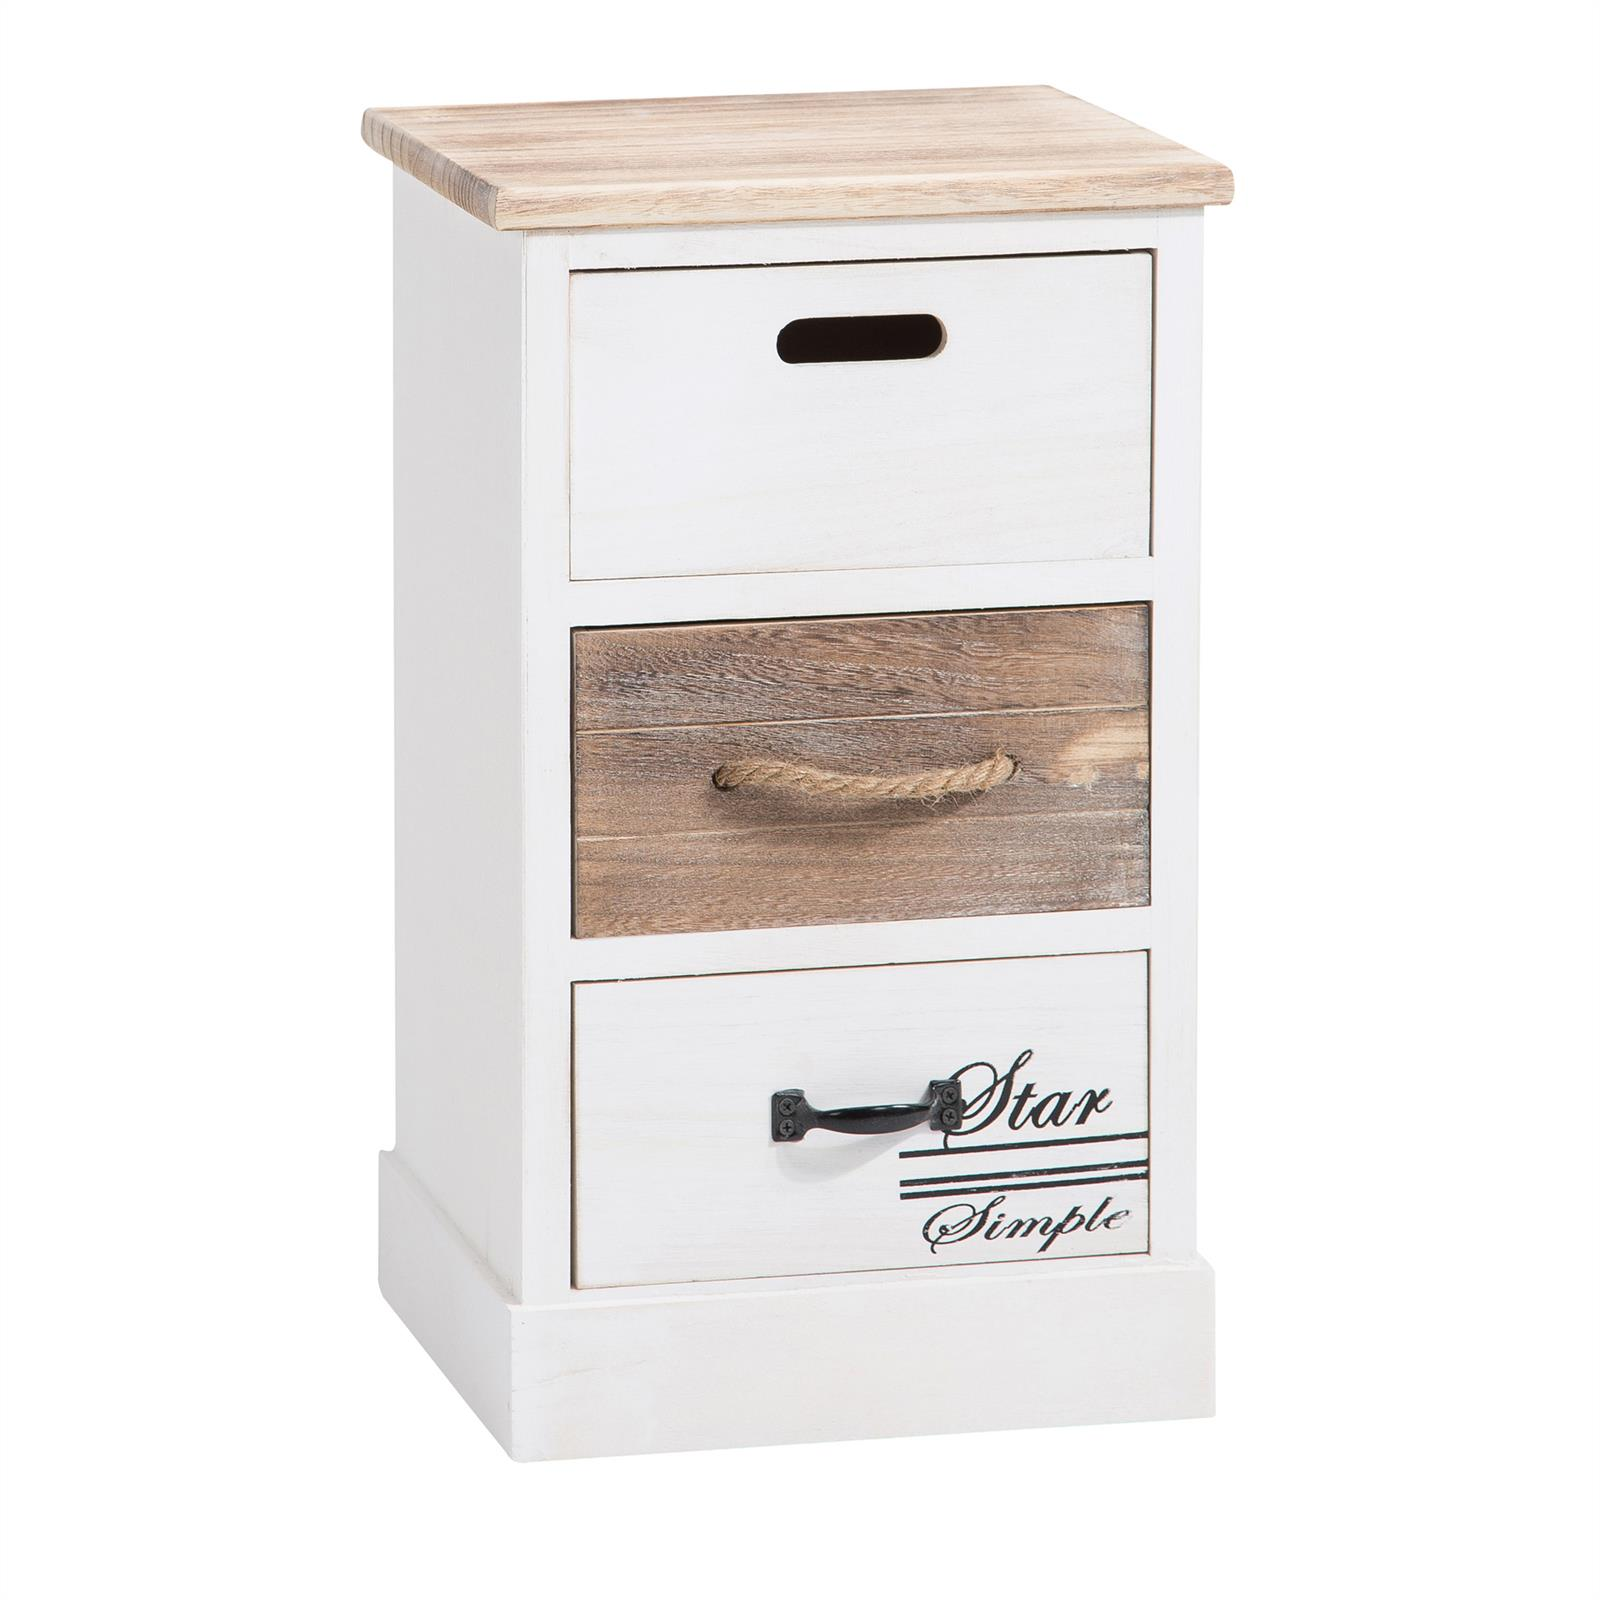 chiffonnier salva 3 tiroirs blanc mobil meubles. Black Bedroom Furniture Sets. Home Design Ideas